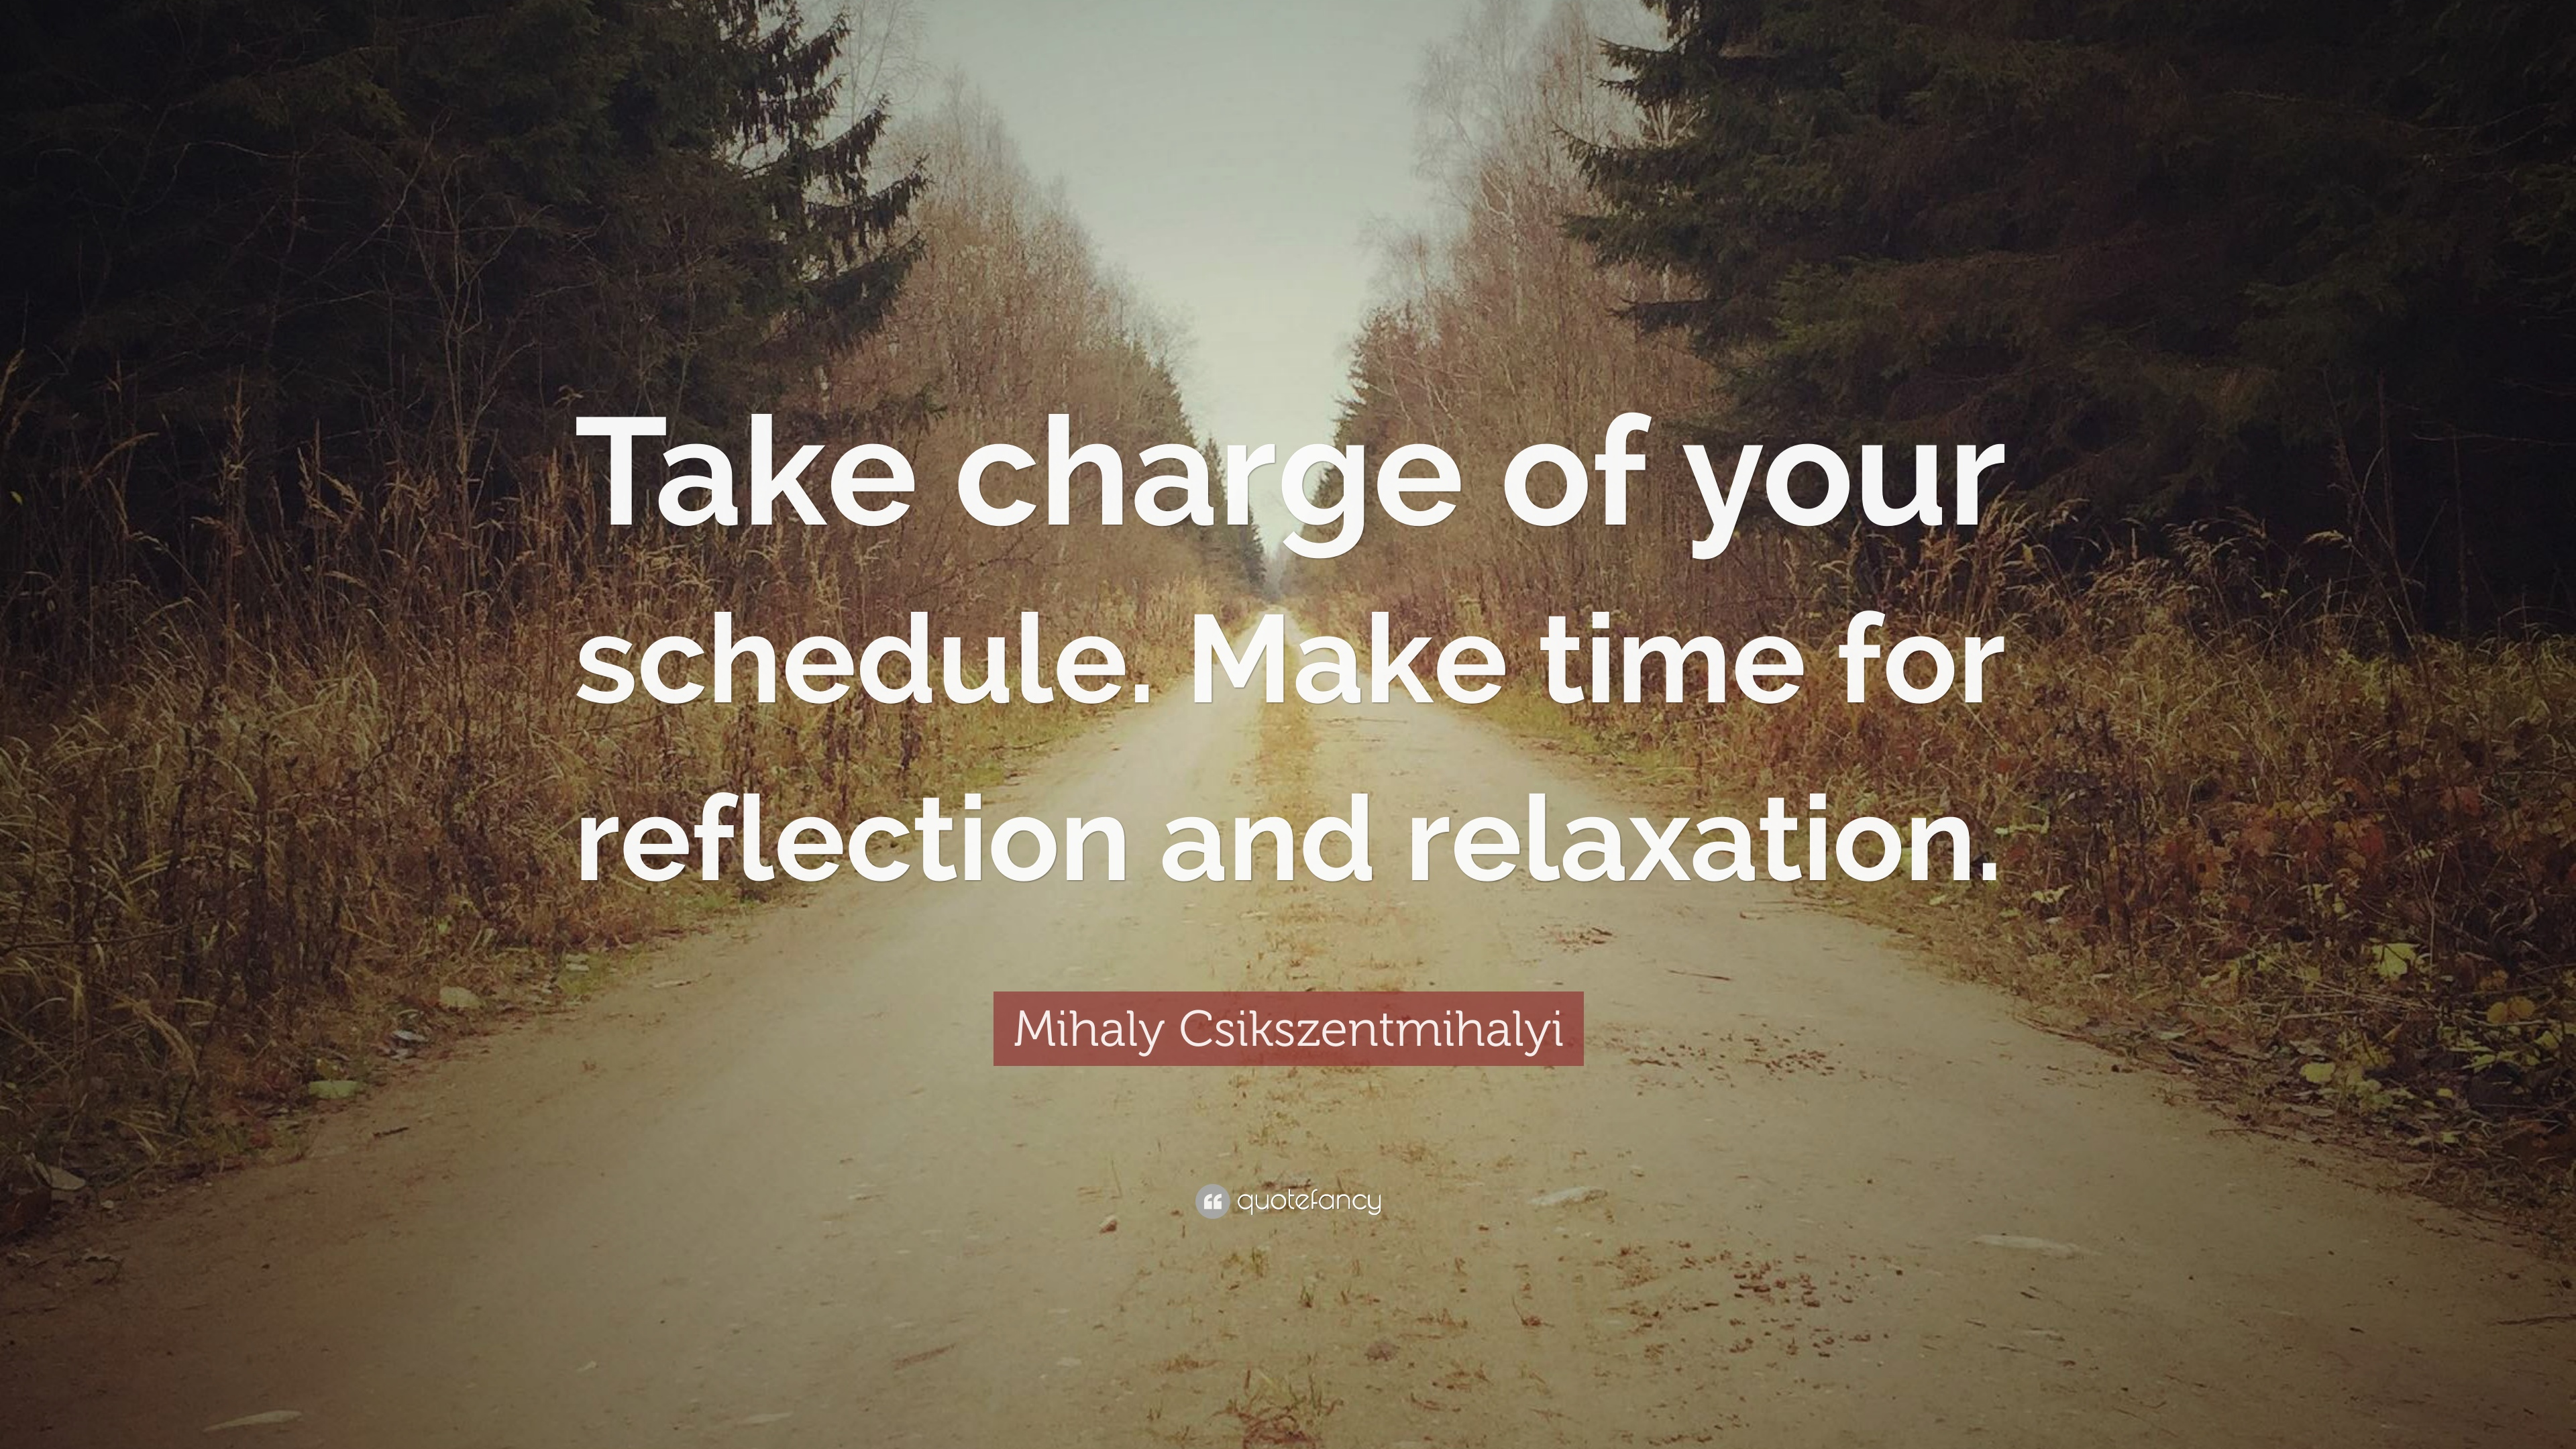 mihaly csikszentmihalyi quote take charge of your schedule make